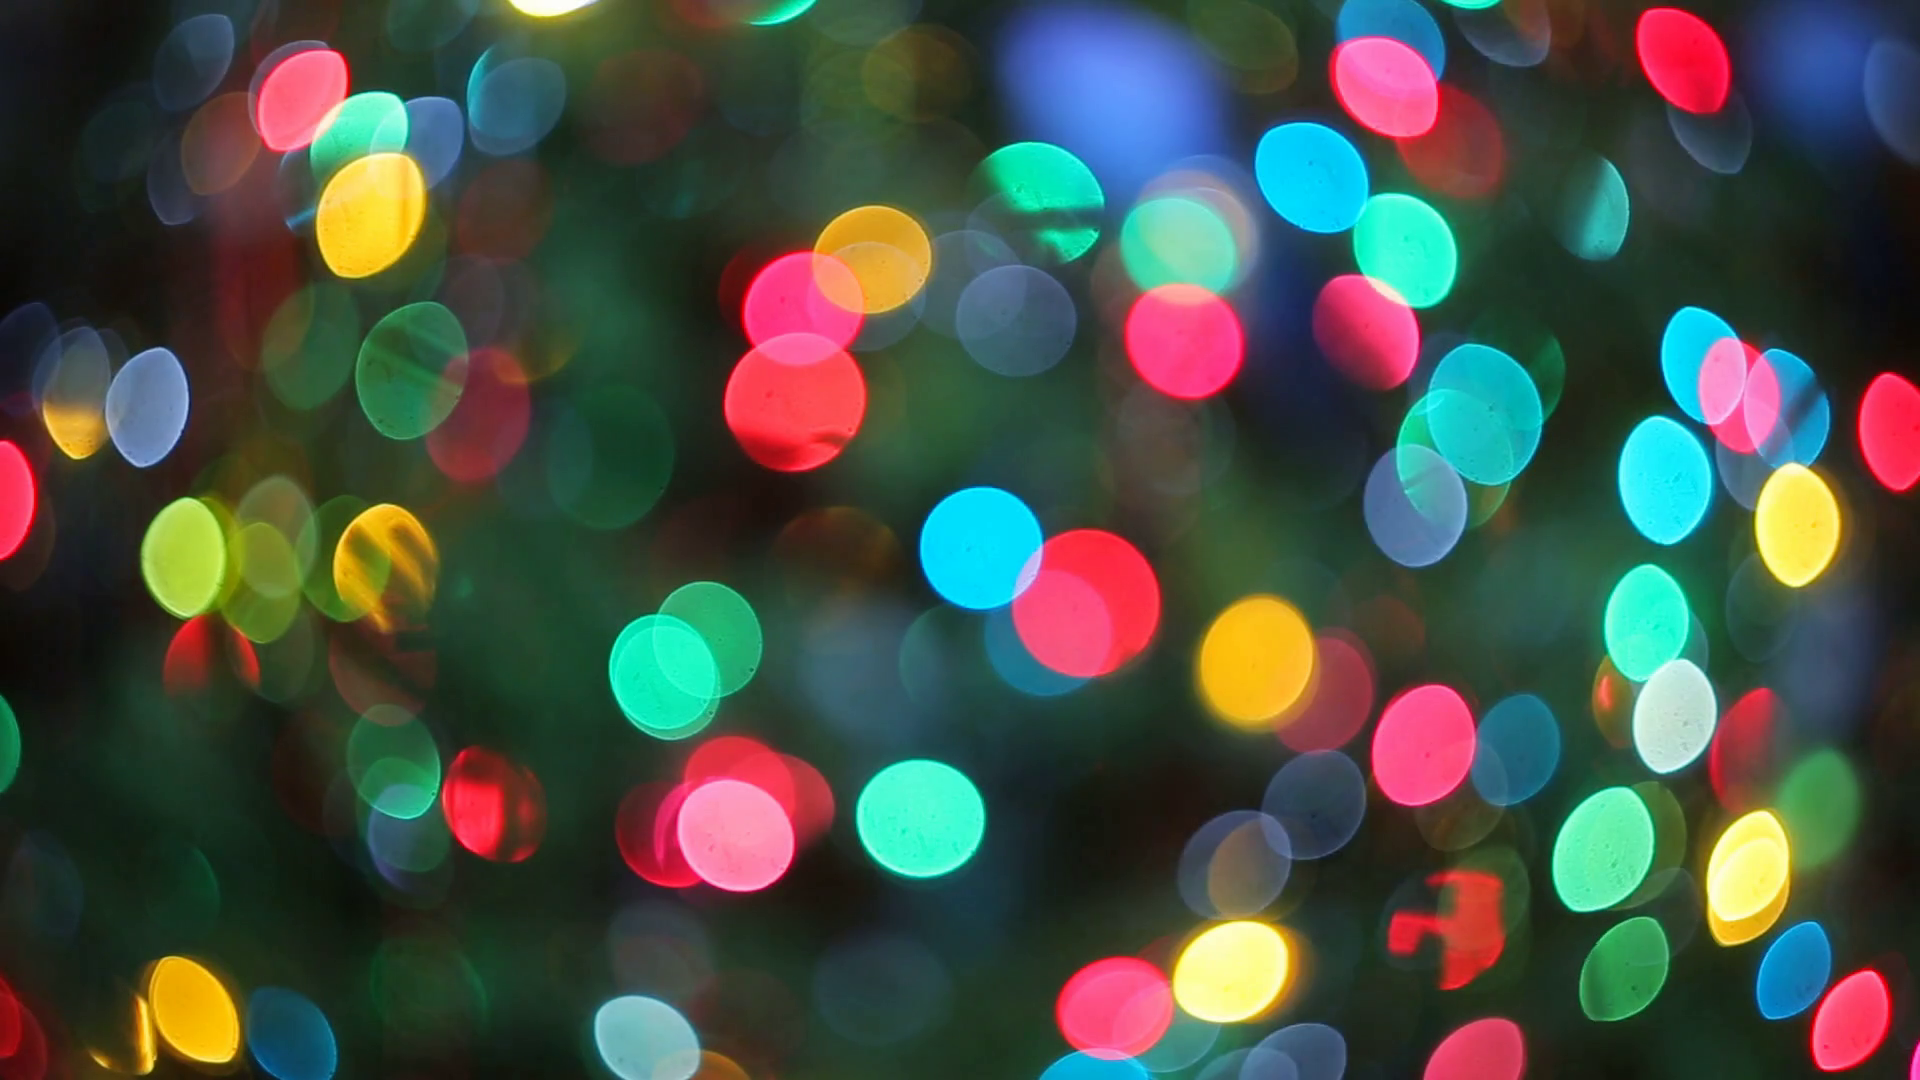 Lights blurred bokeh background from christmas night party for your ...